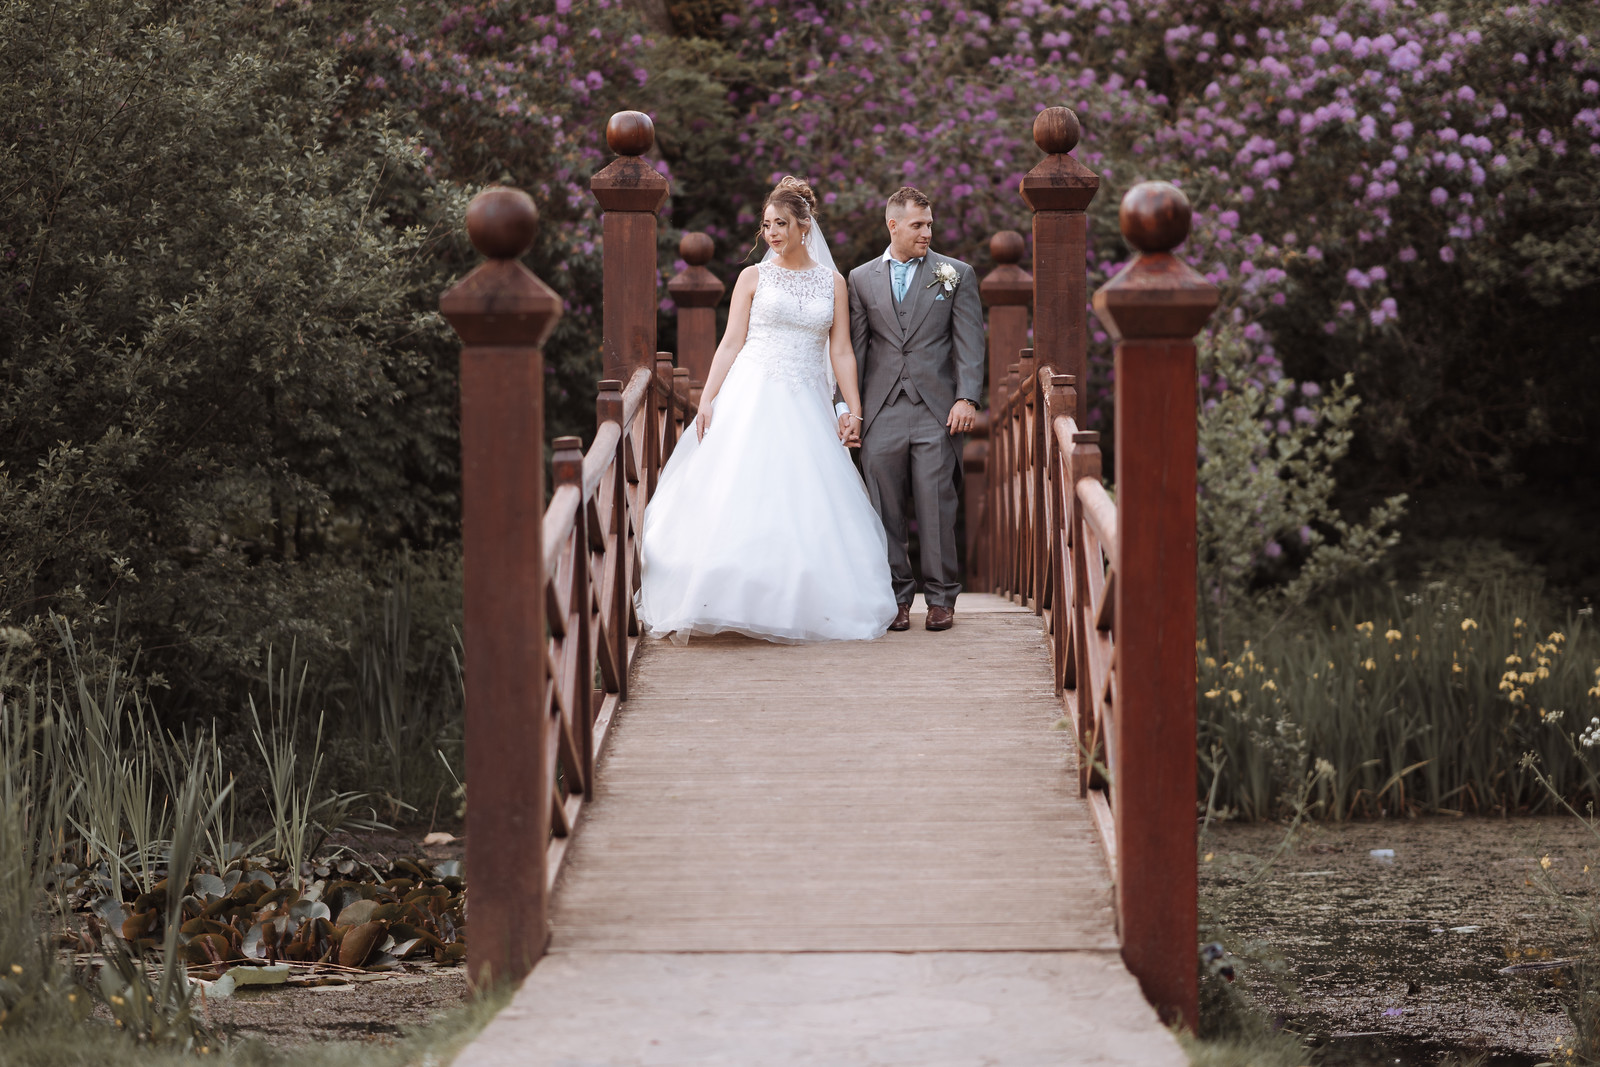 Bride and groom walk across the bridge in the beauty of the outside of the venue